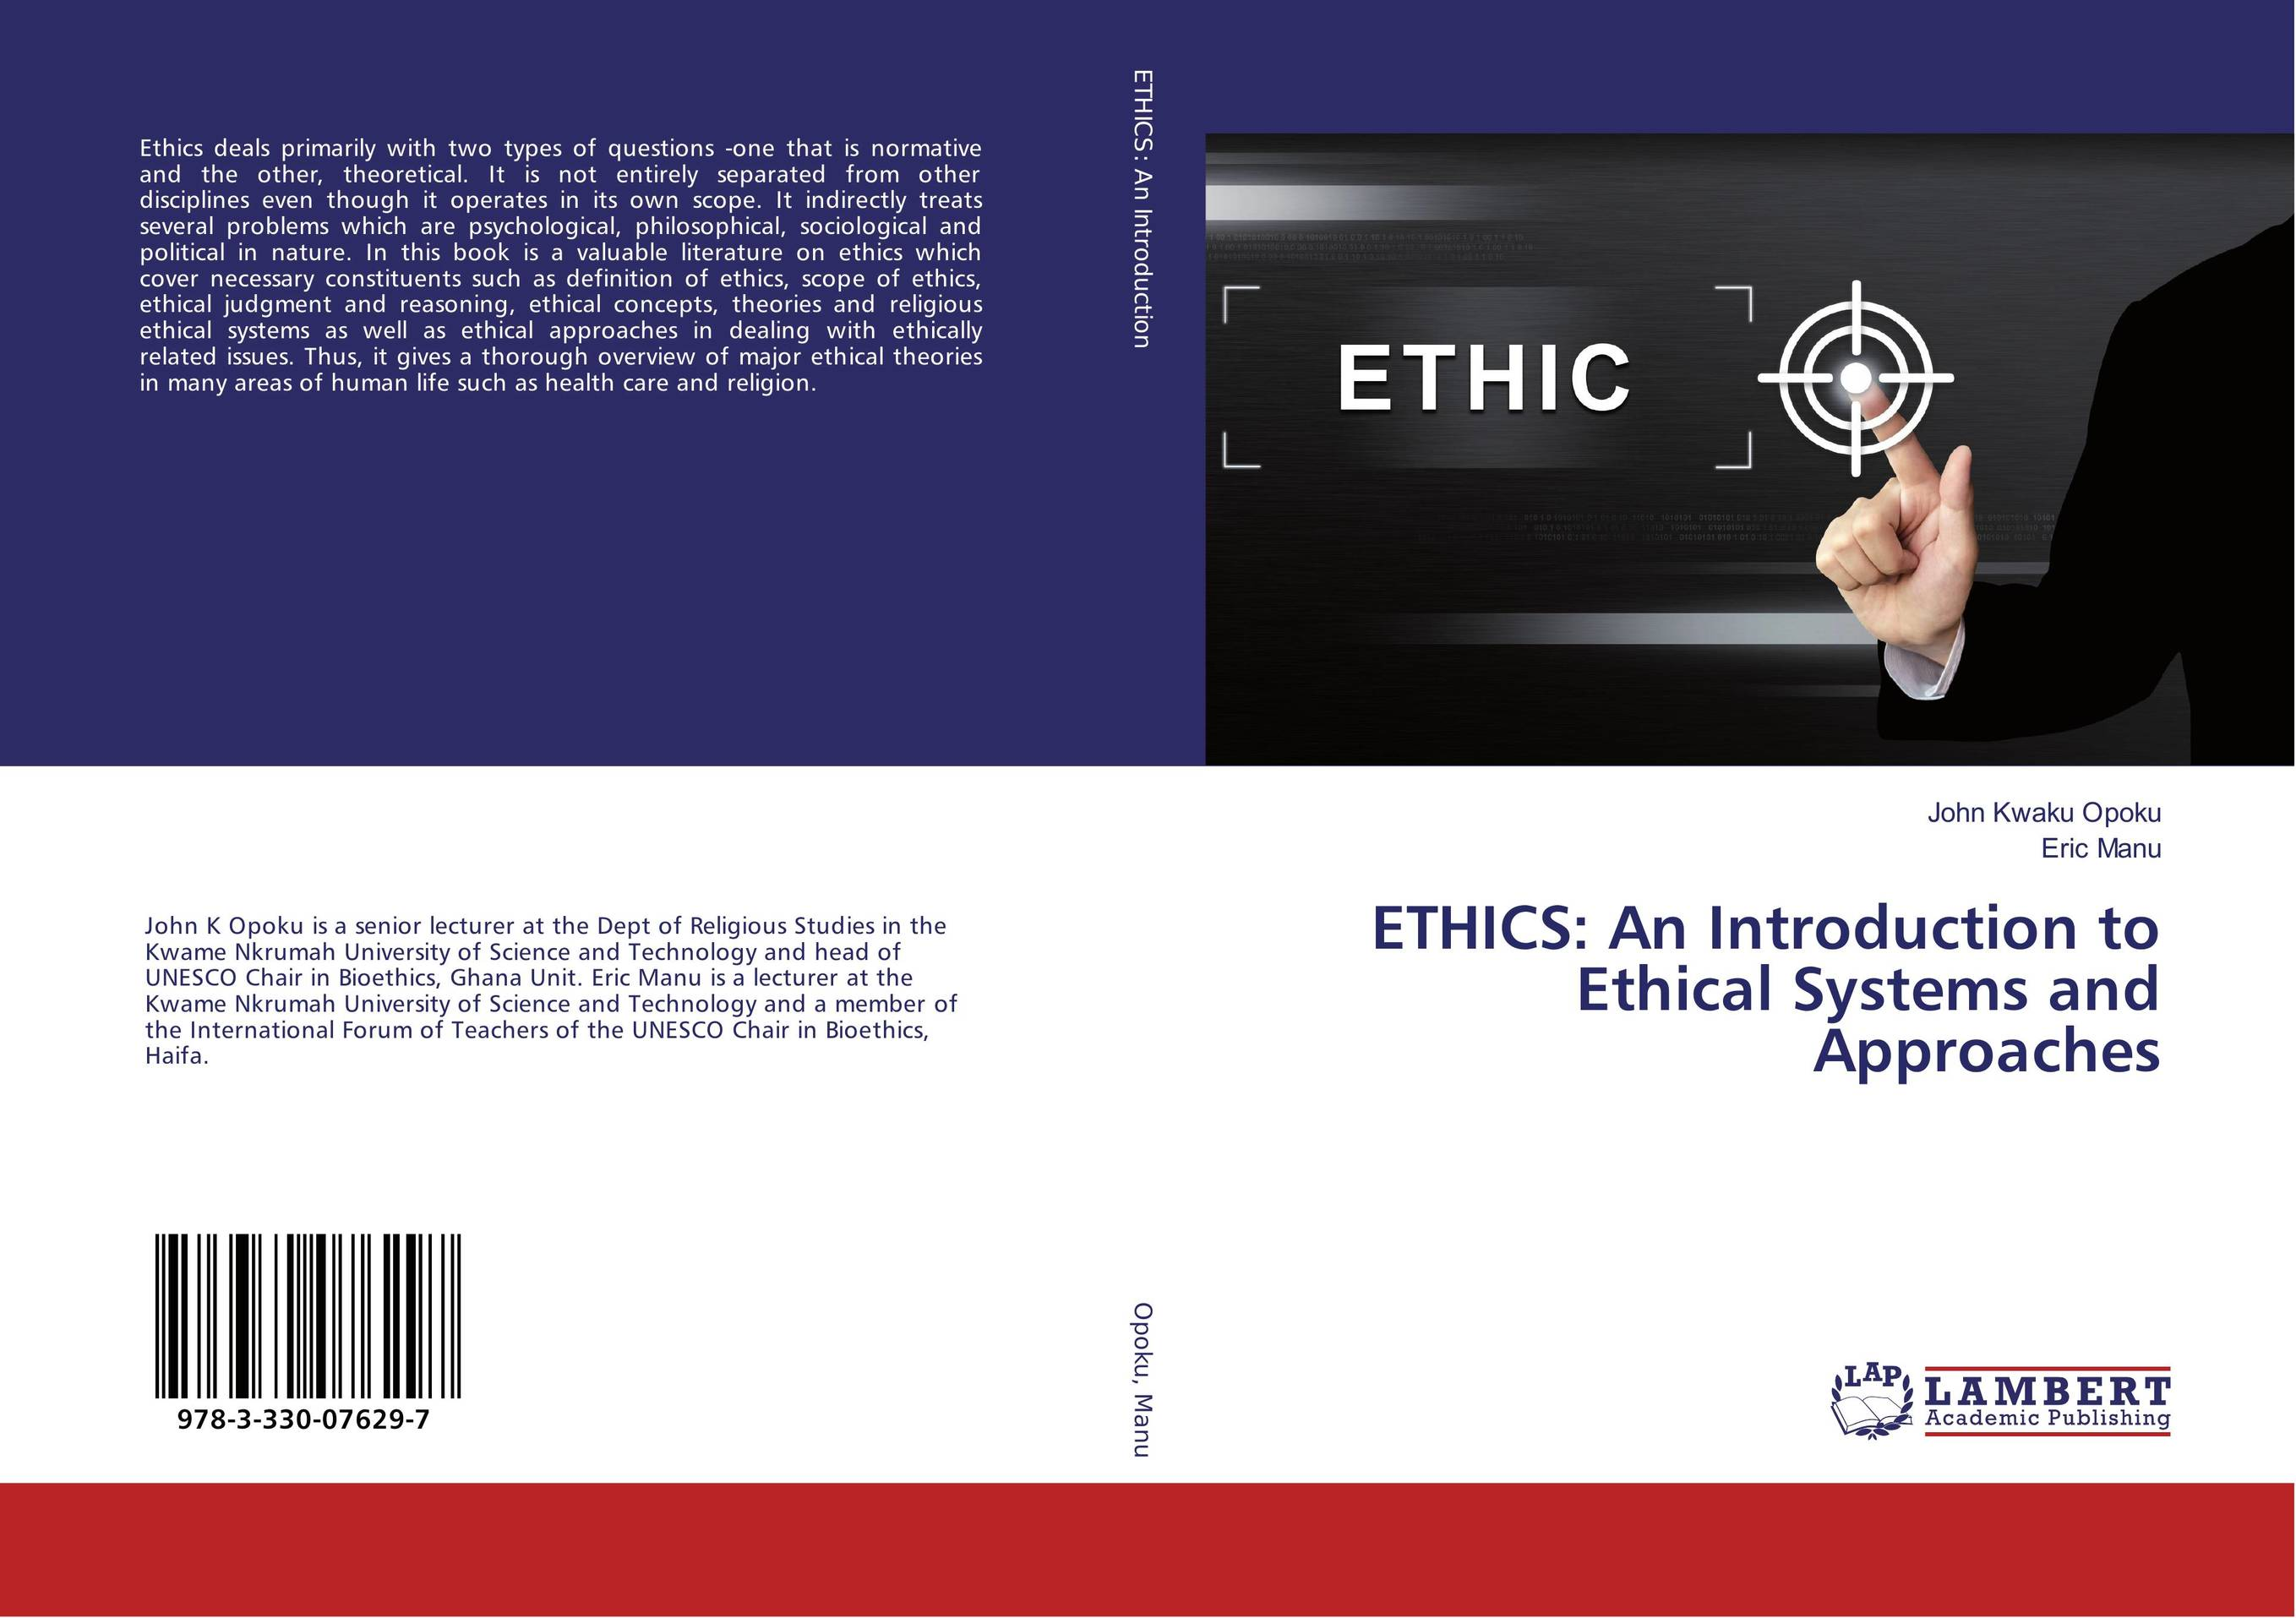 9783330076297 ETHICS An Introduction to Ethical Systems and Approaches John K